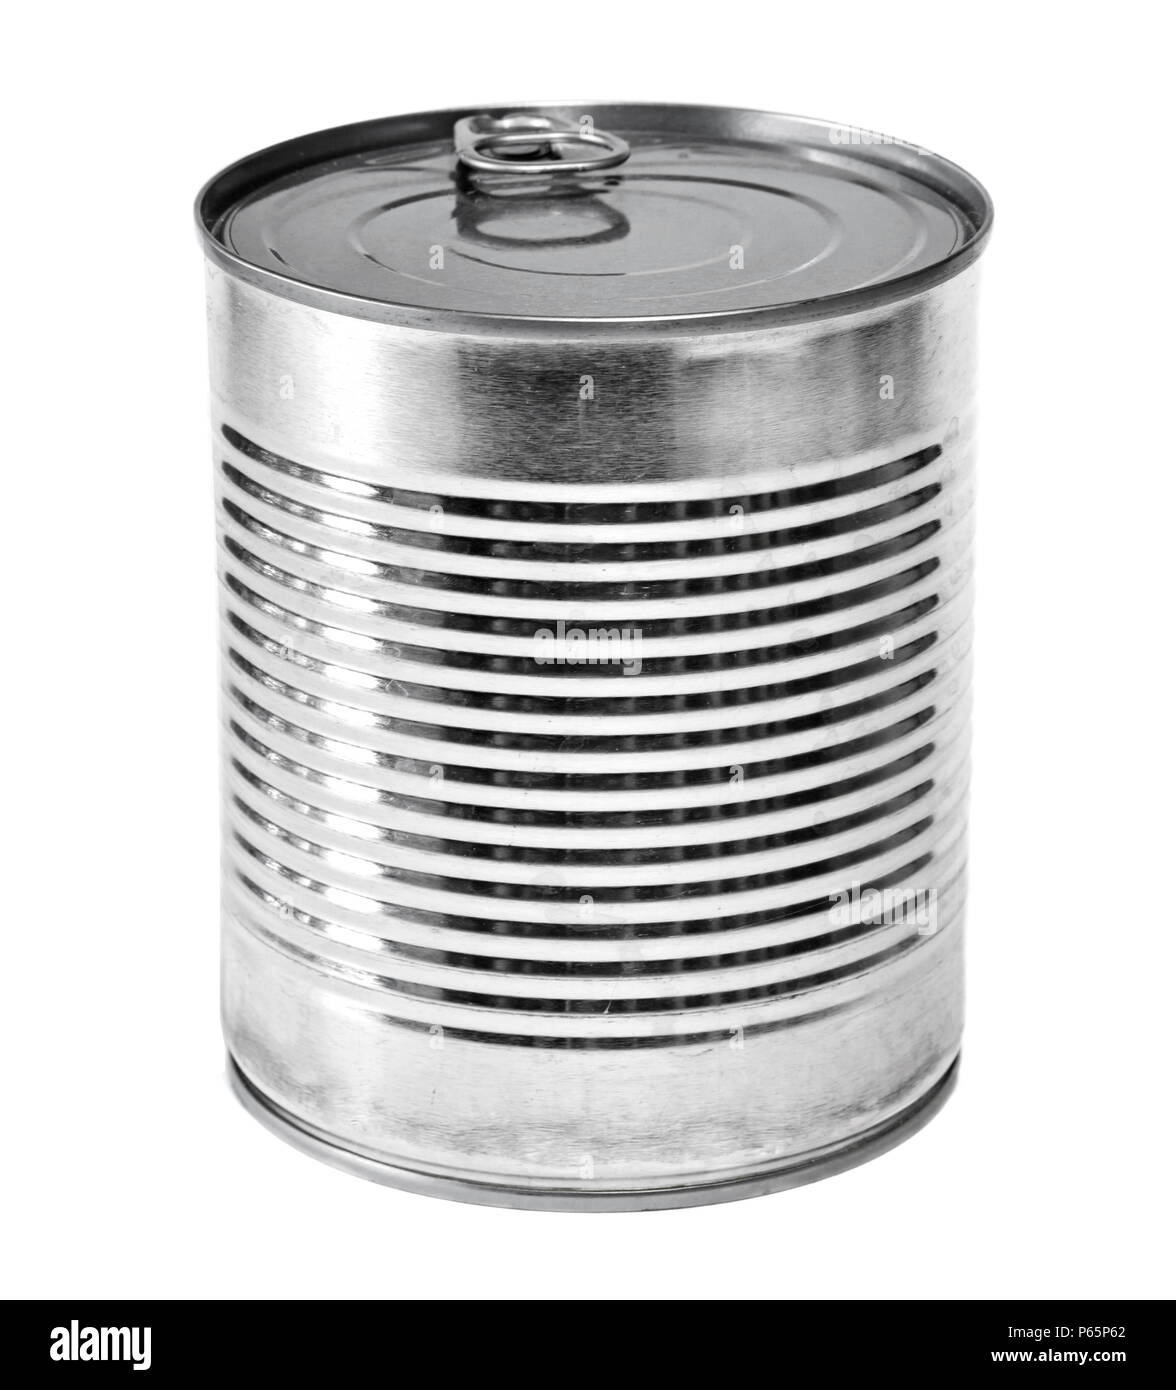 Lit Metal Metal Can Or Aluminum Lit Isolated On White Background Conserved